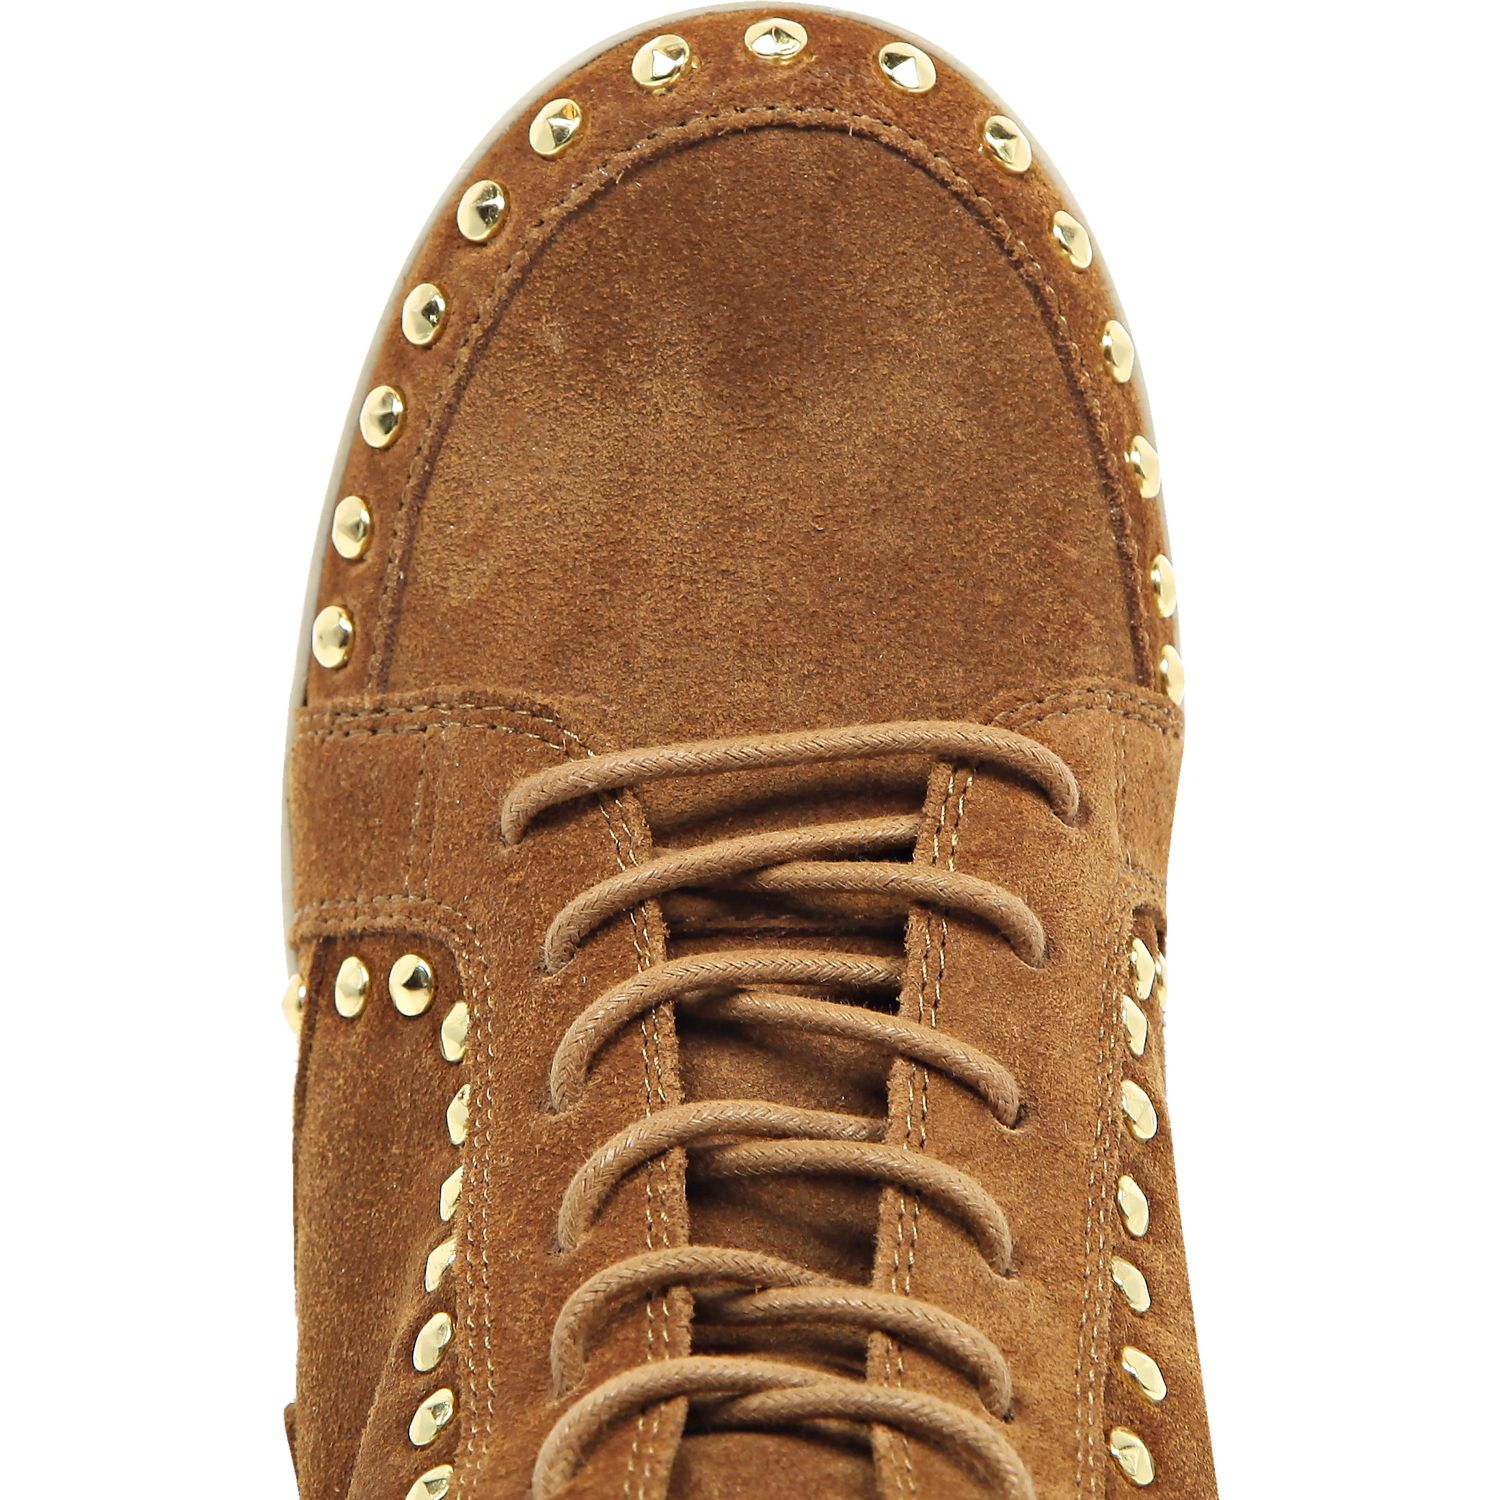 08d2943b70a7 River Island - Multicolor Tan Suede Fringed High Top Wedge Trainers - Lyst